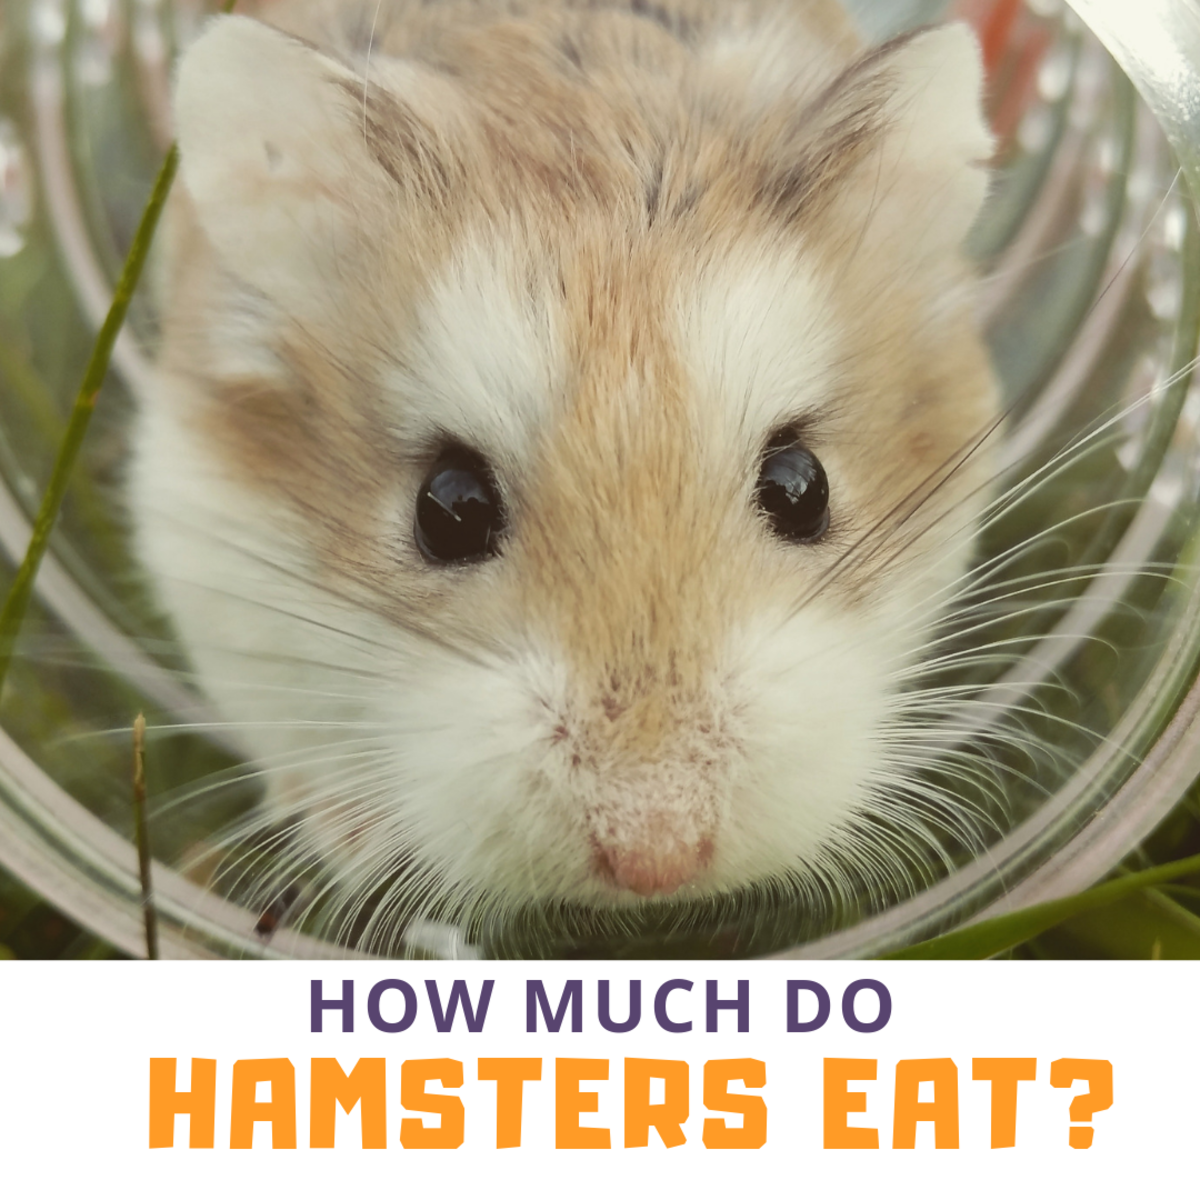 How Much Does a Hamster Need to Eat?